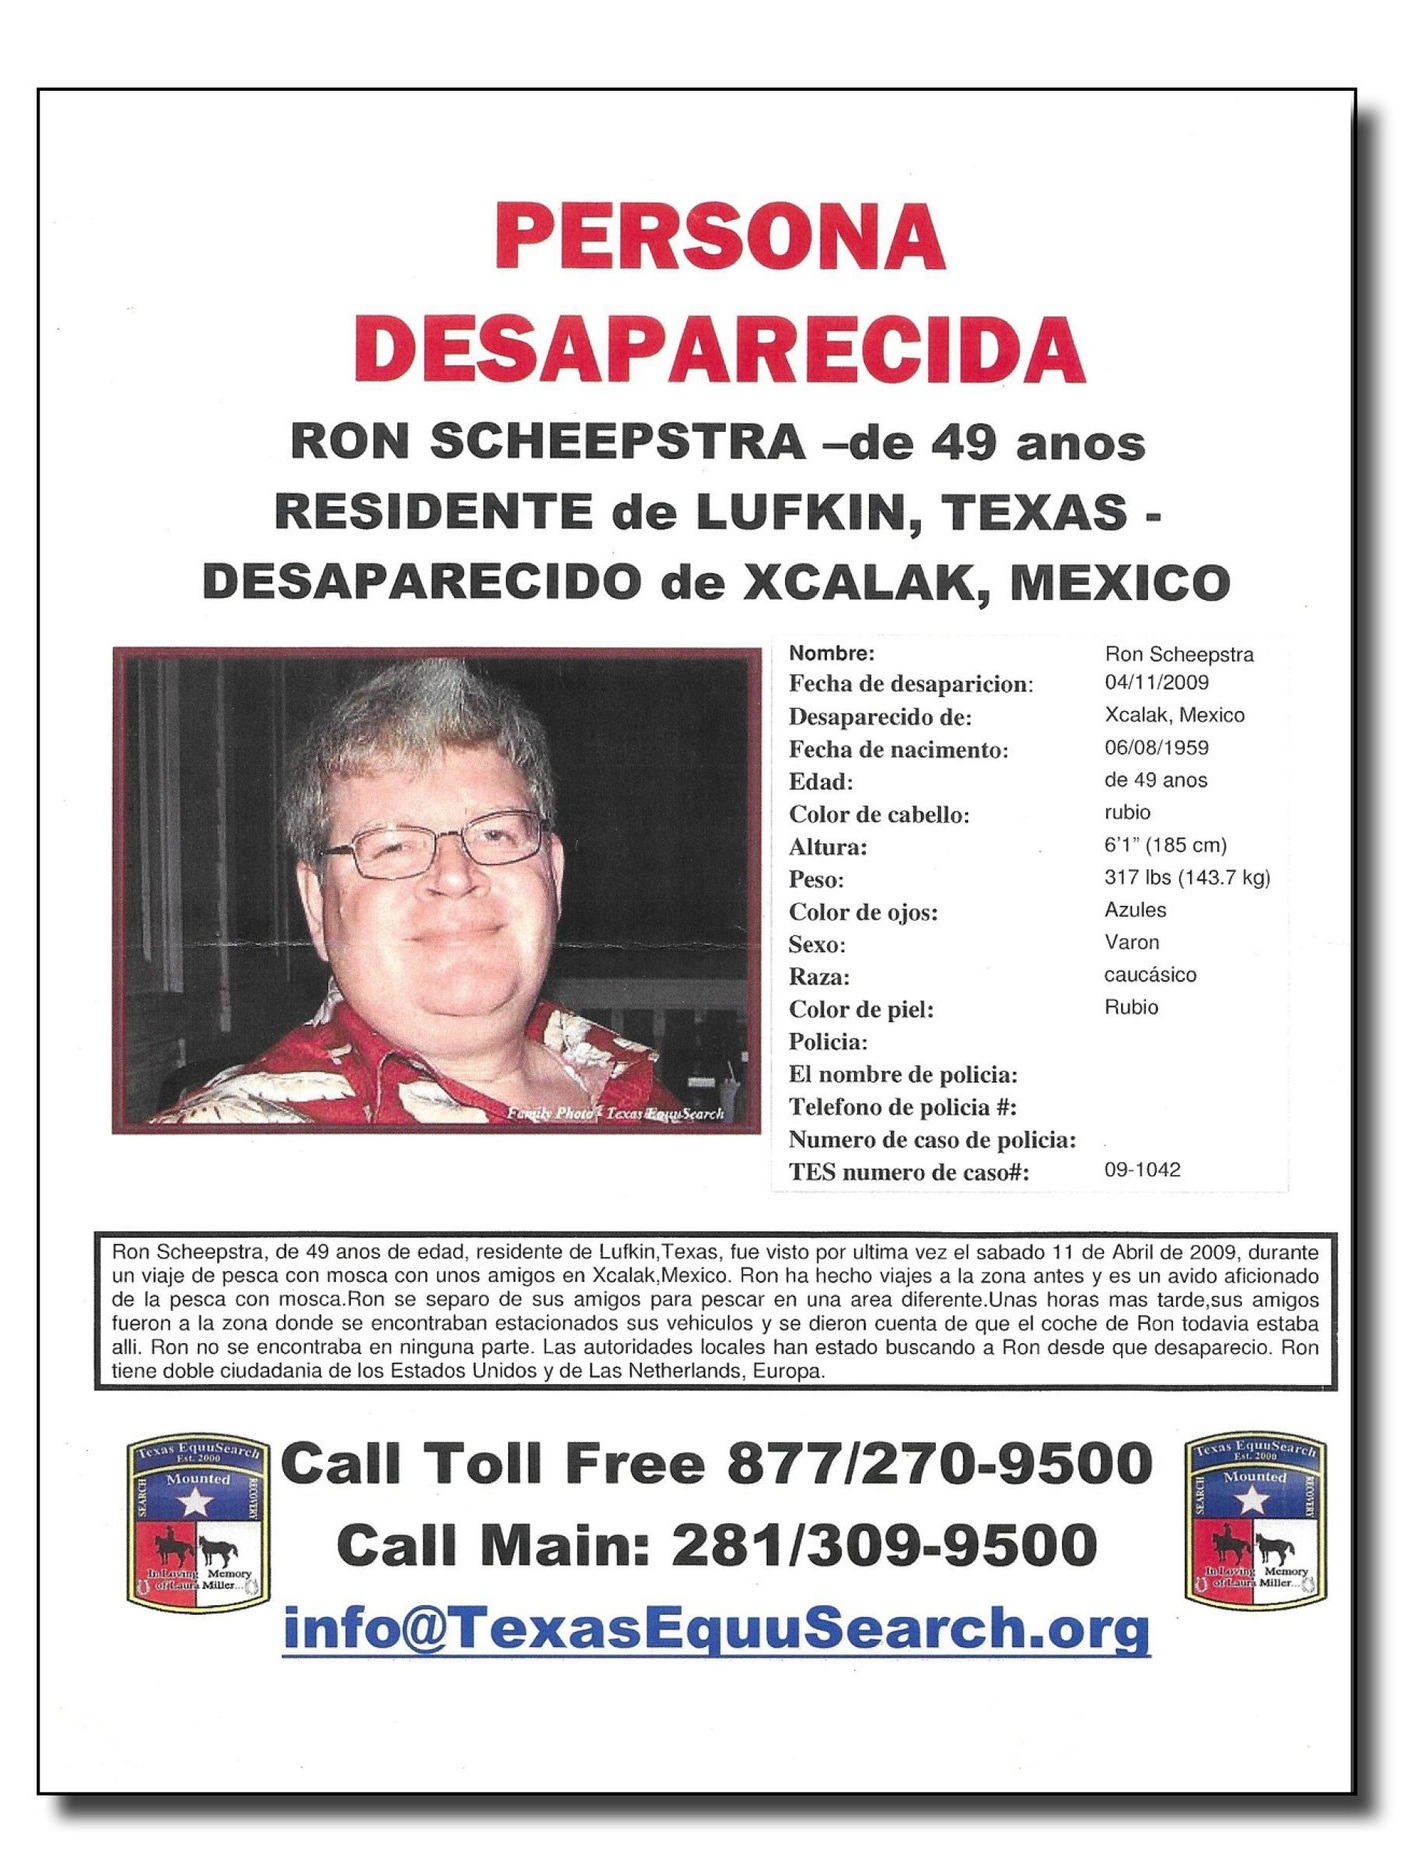 "Missing Poster that was circulated from Texas south through Belize. These posters were originally produced by an organization from Texas called Texas Equusearch, which helps locate and recover missing persons in support of the search effort. On April 27th 2009, a media outlet from Lufkin Texas reported that the organization's ""search and recovery team has deemed it too dangerous to work in Mexico on the case of a missing Lufkin man."" -"